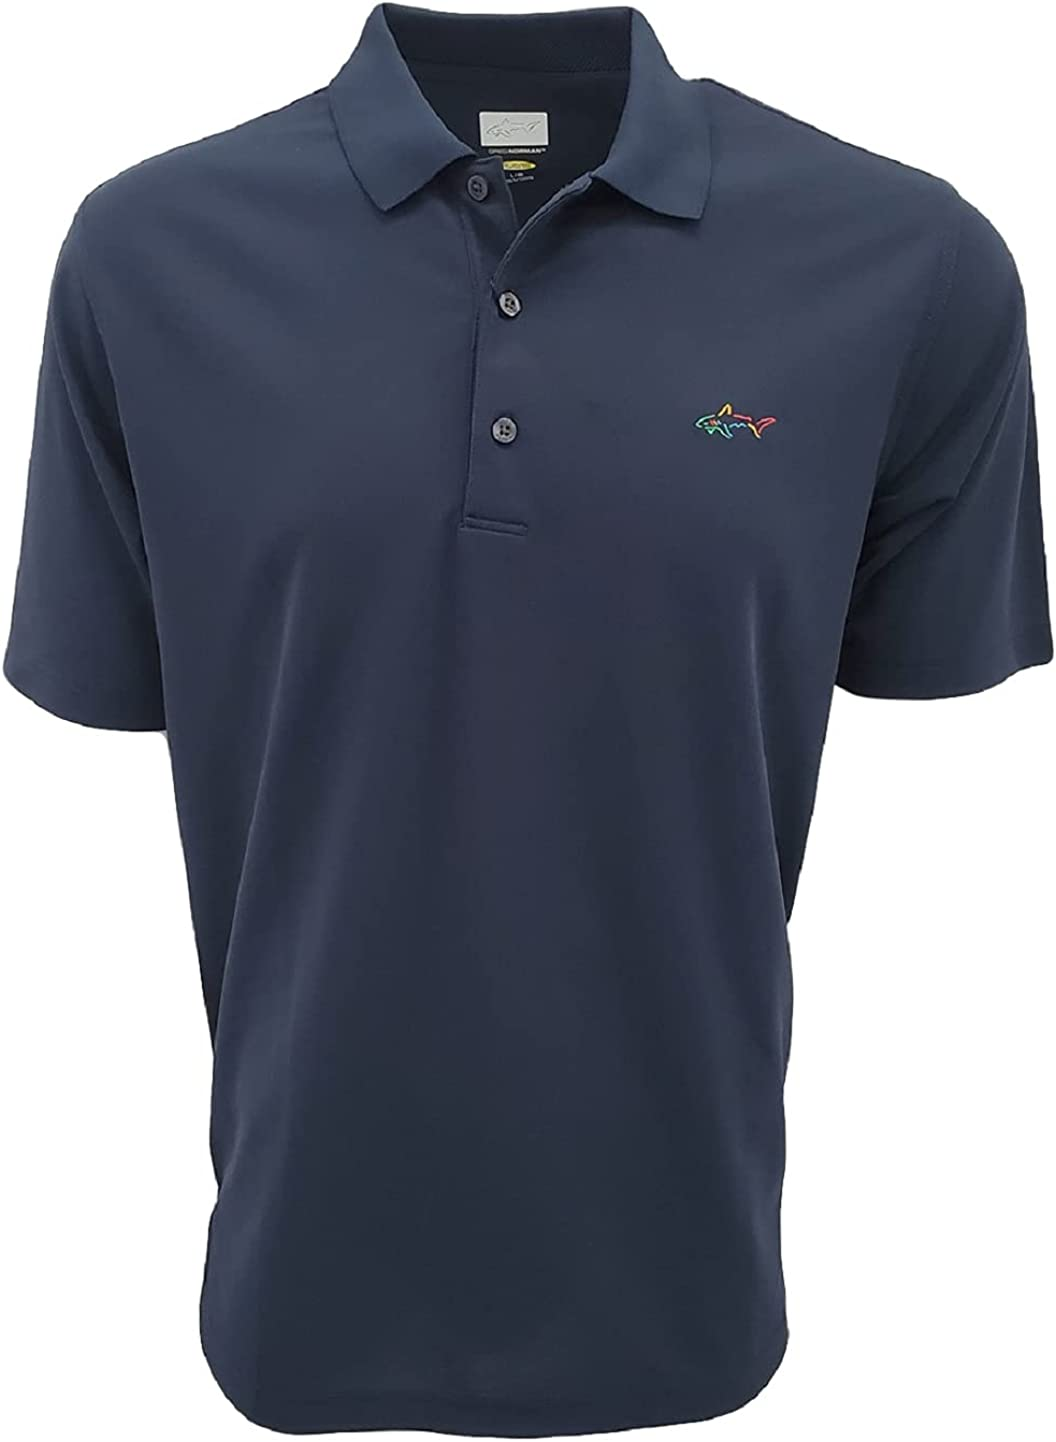 Greg Norman Men's Technical Performance Tucson Mall half Polyester Polo Dry Play